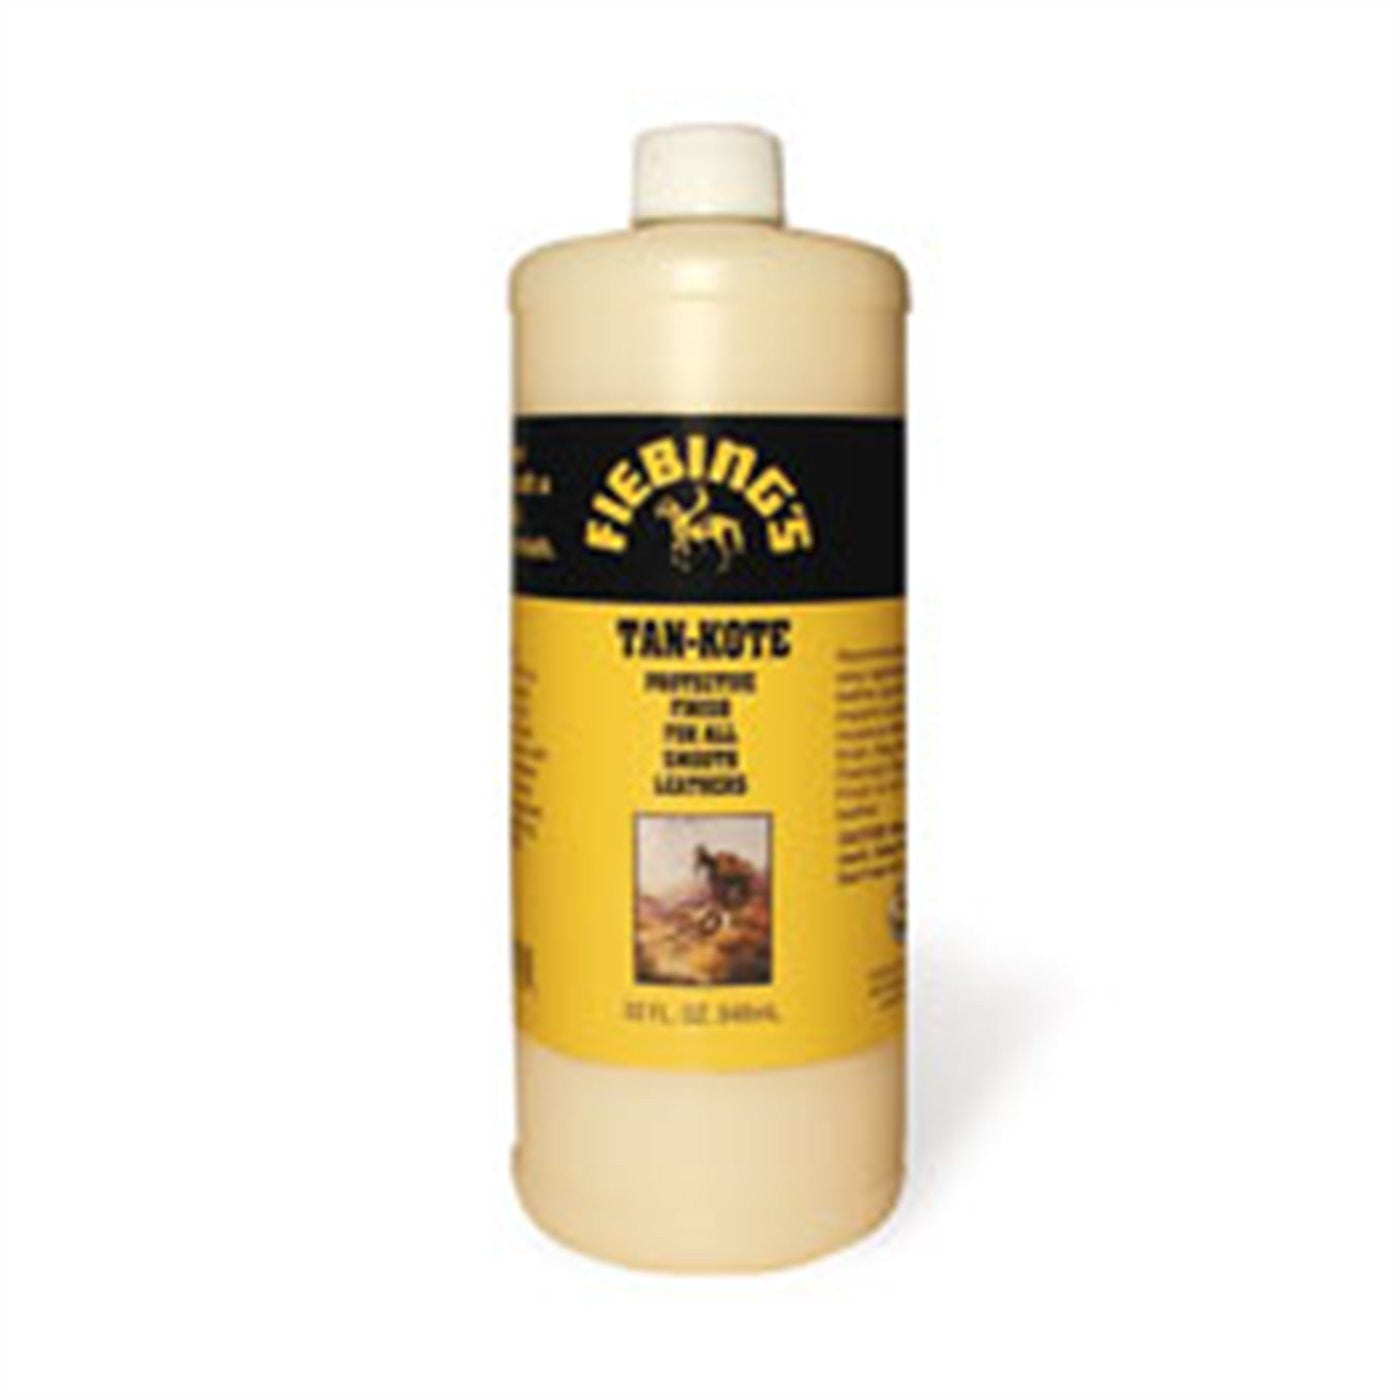 Image of 44-2220-03 - Tan Kote 32oz